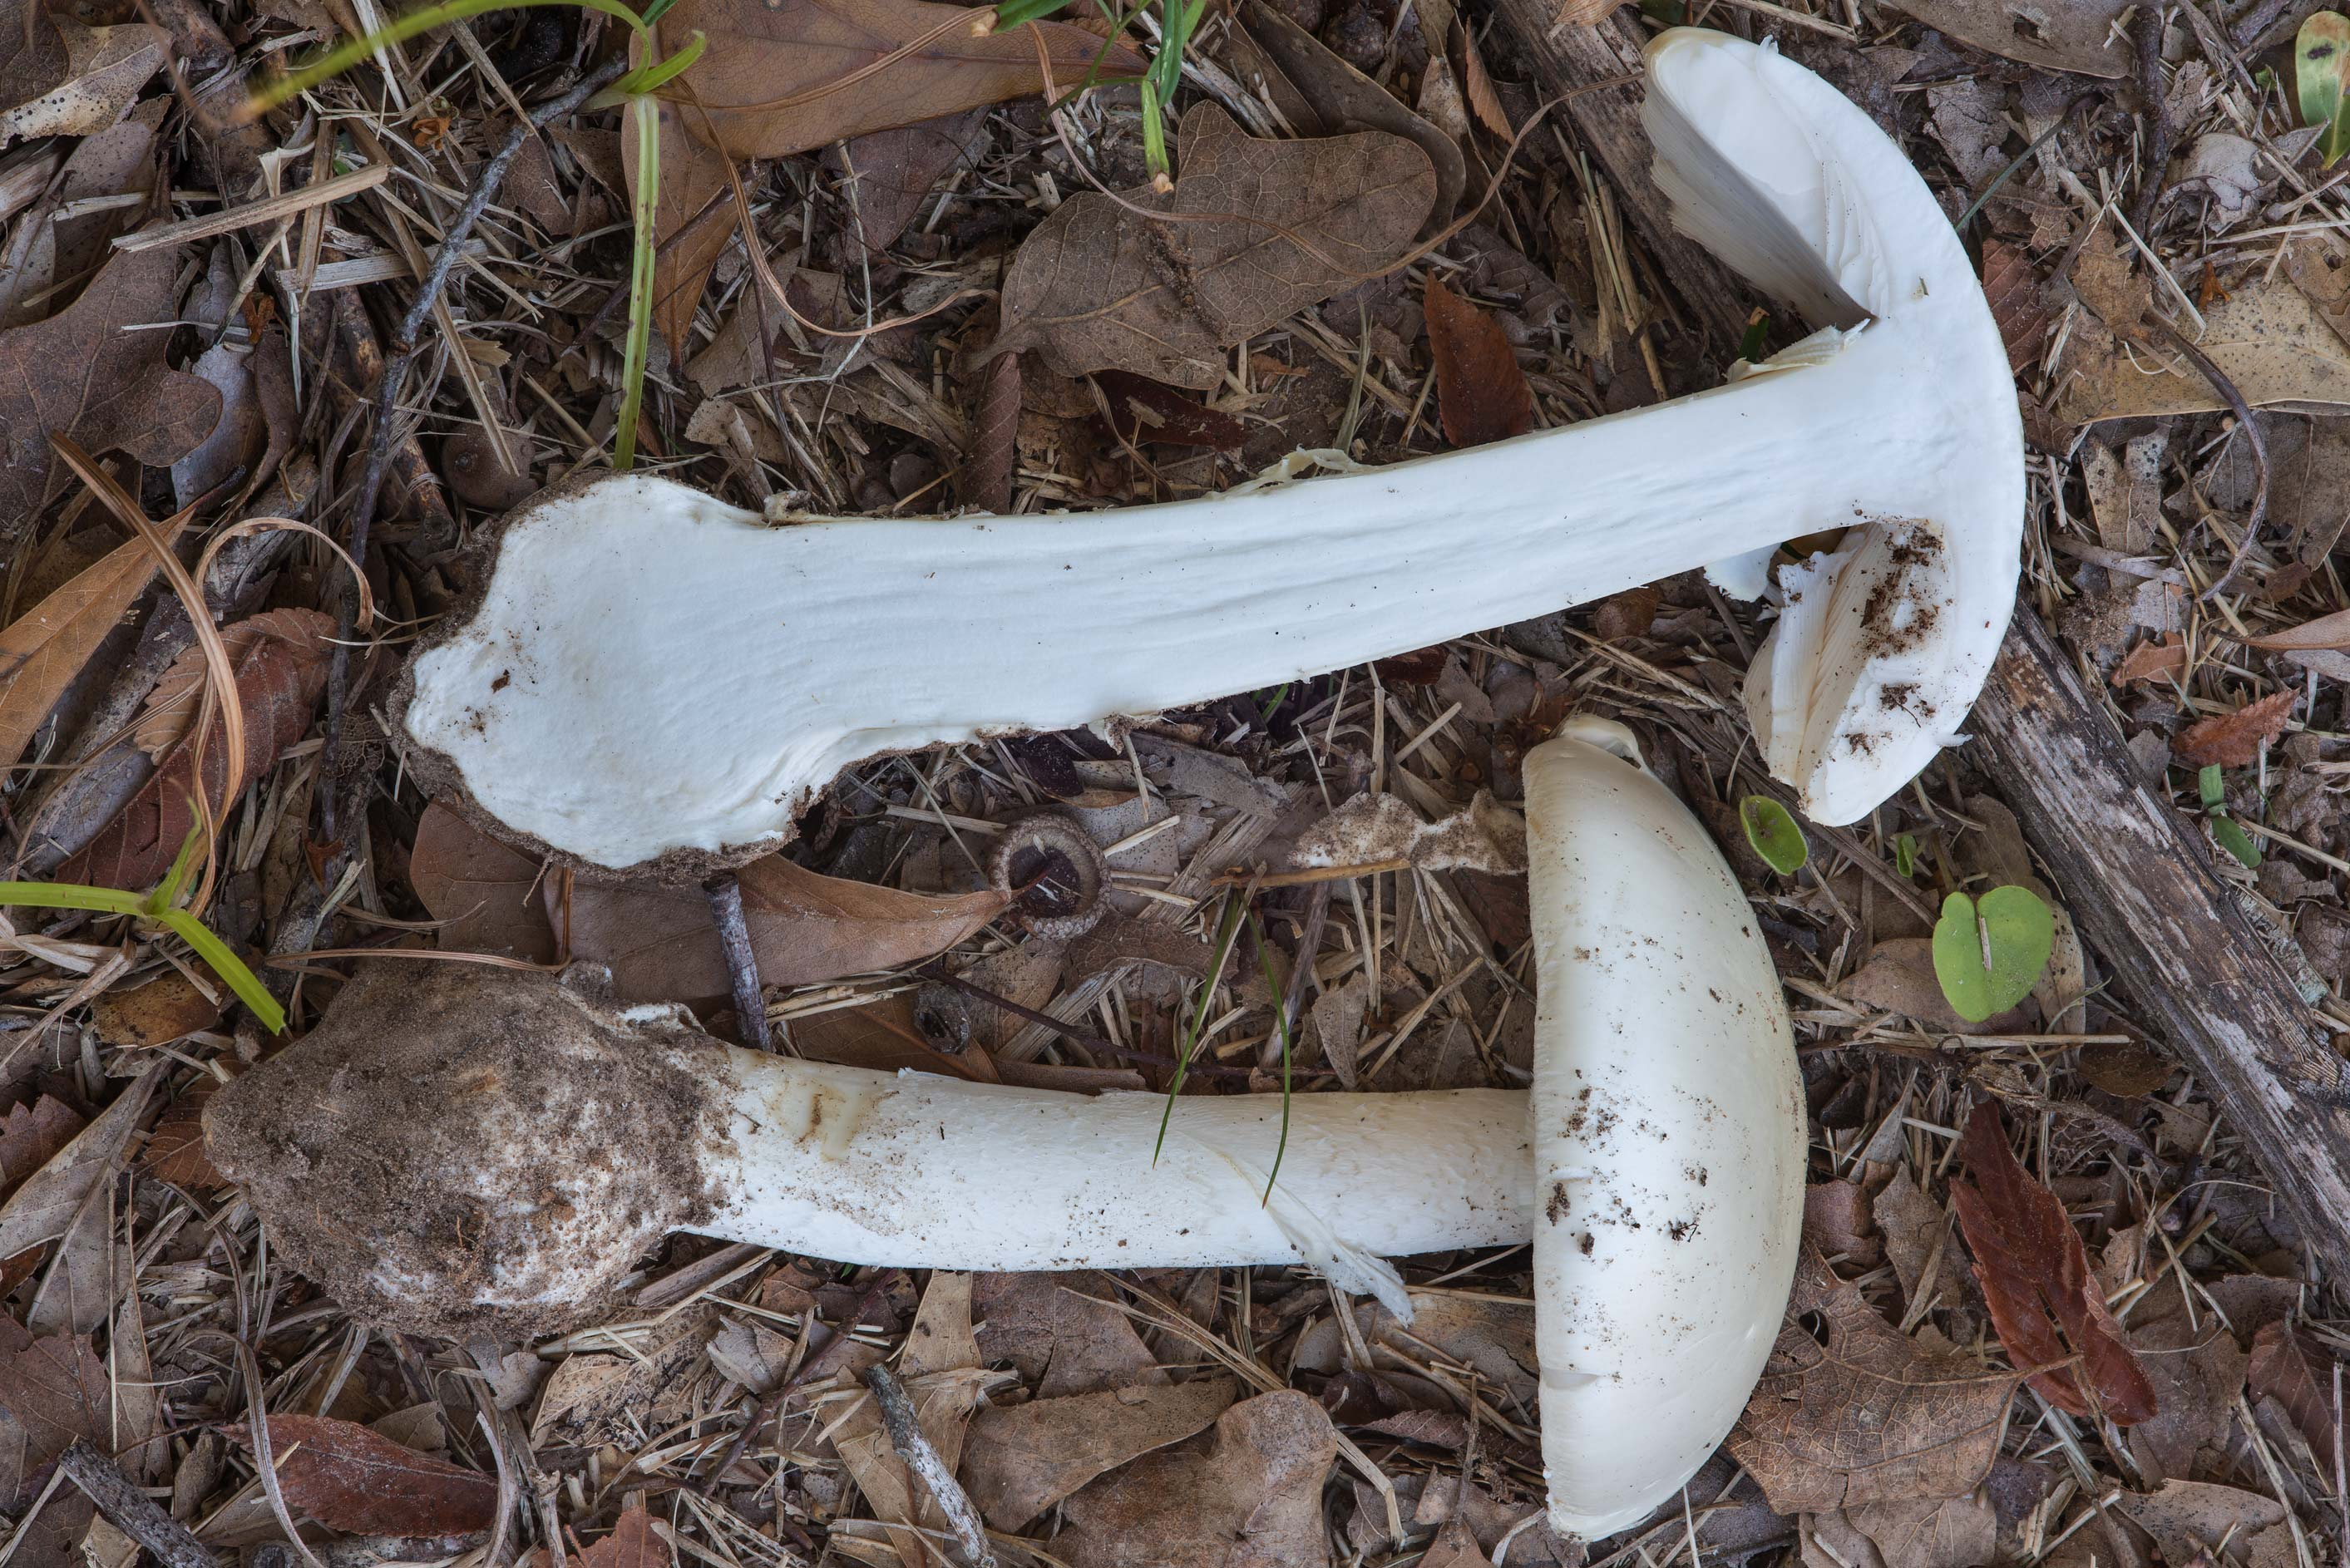 Dissected destroying angel mushroom Amanita...Pen Creek Park. College Station, Texas